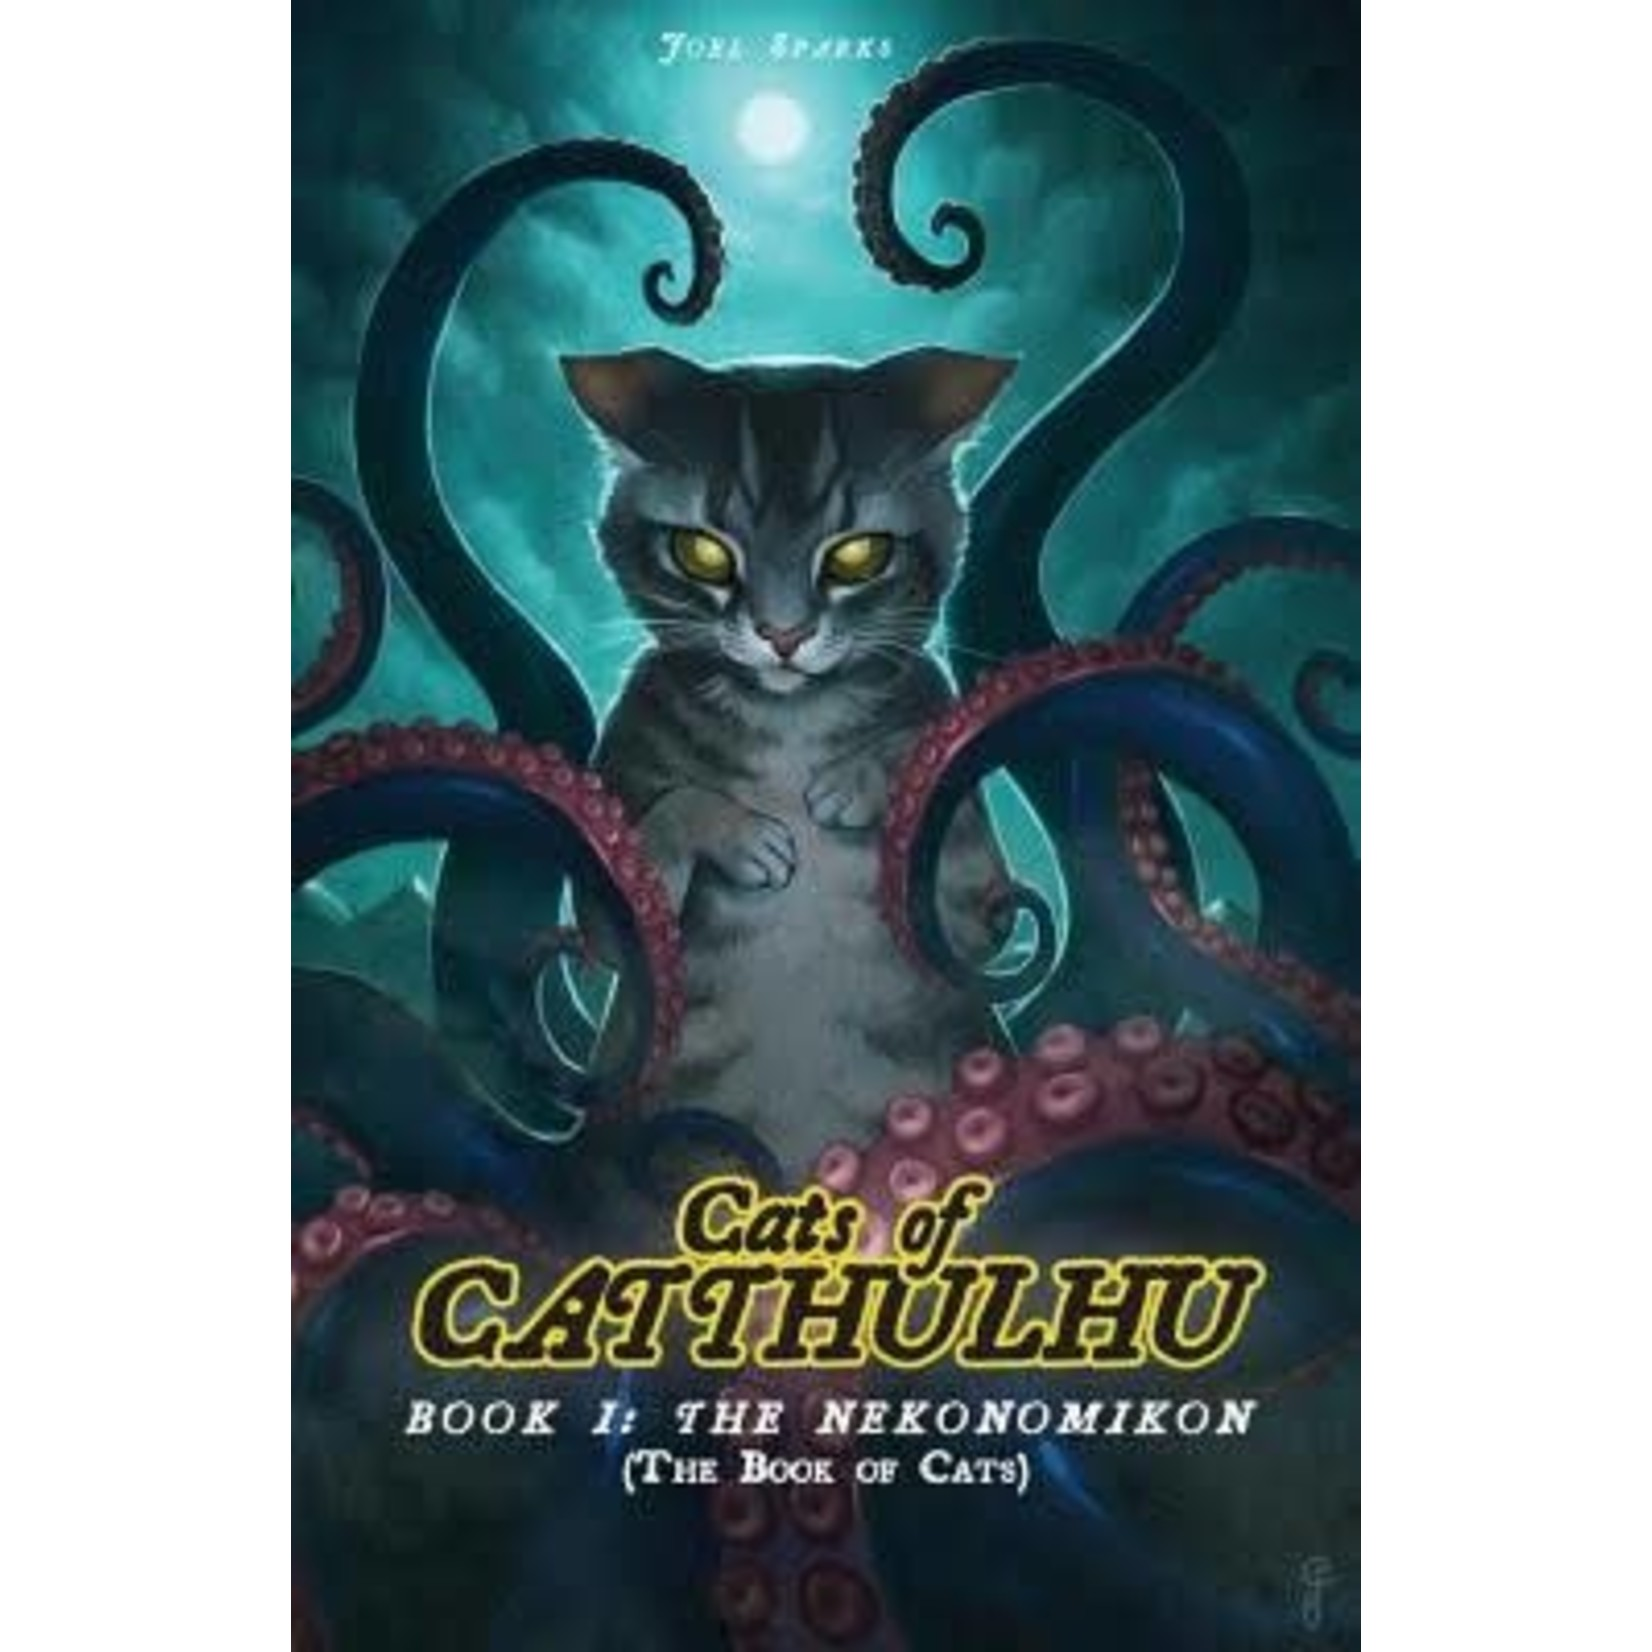 Joel Sparks Cats of Catthulhu